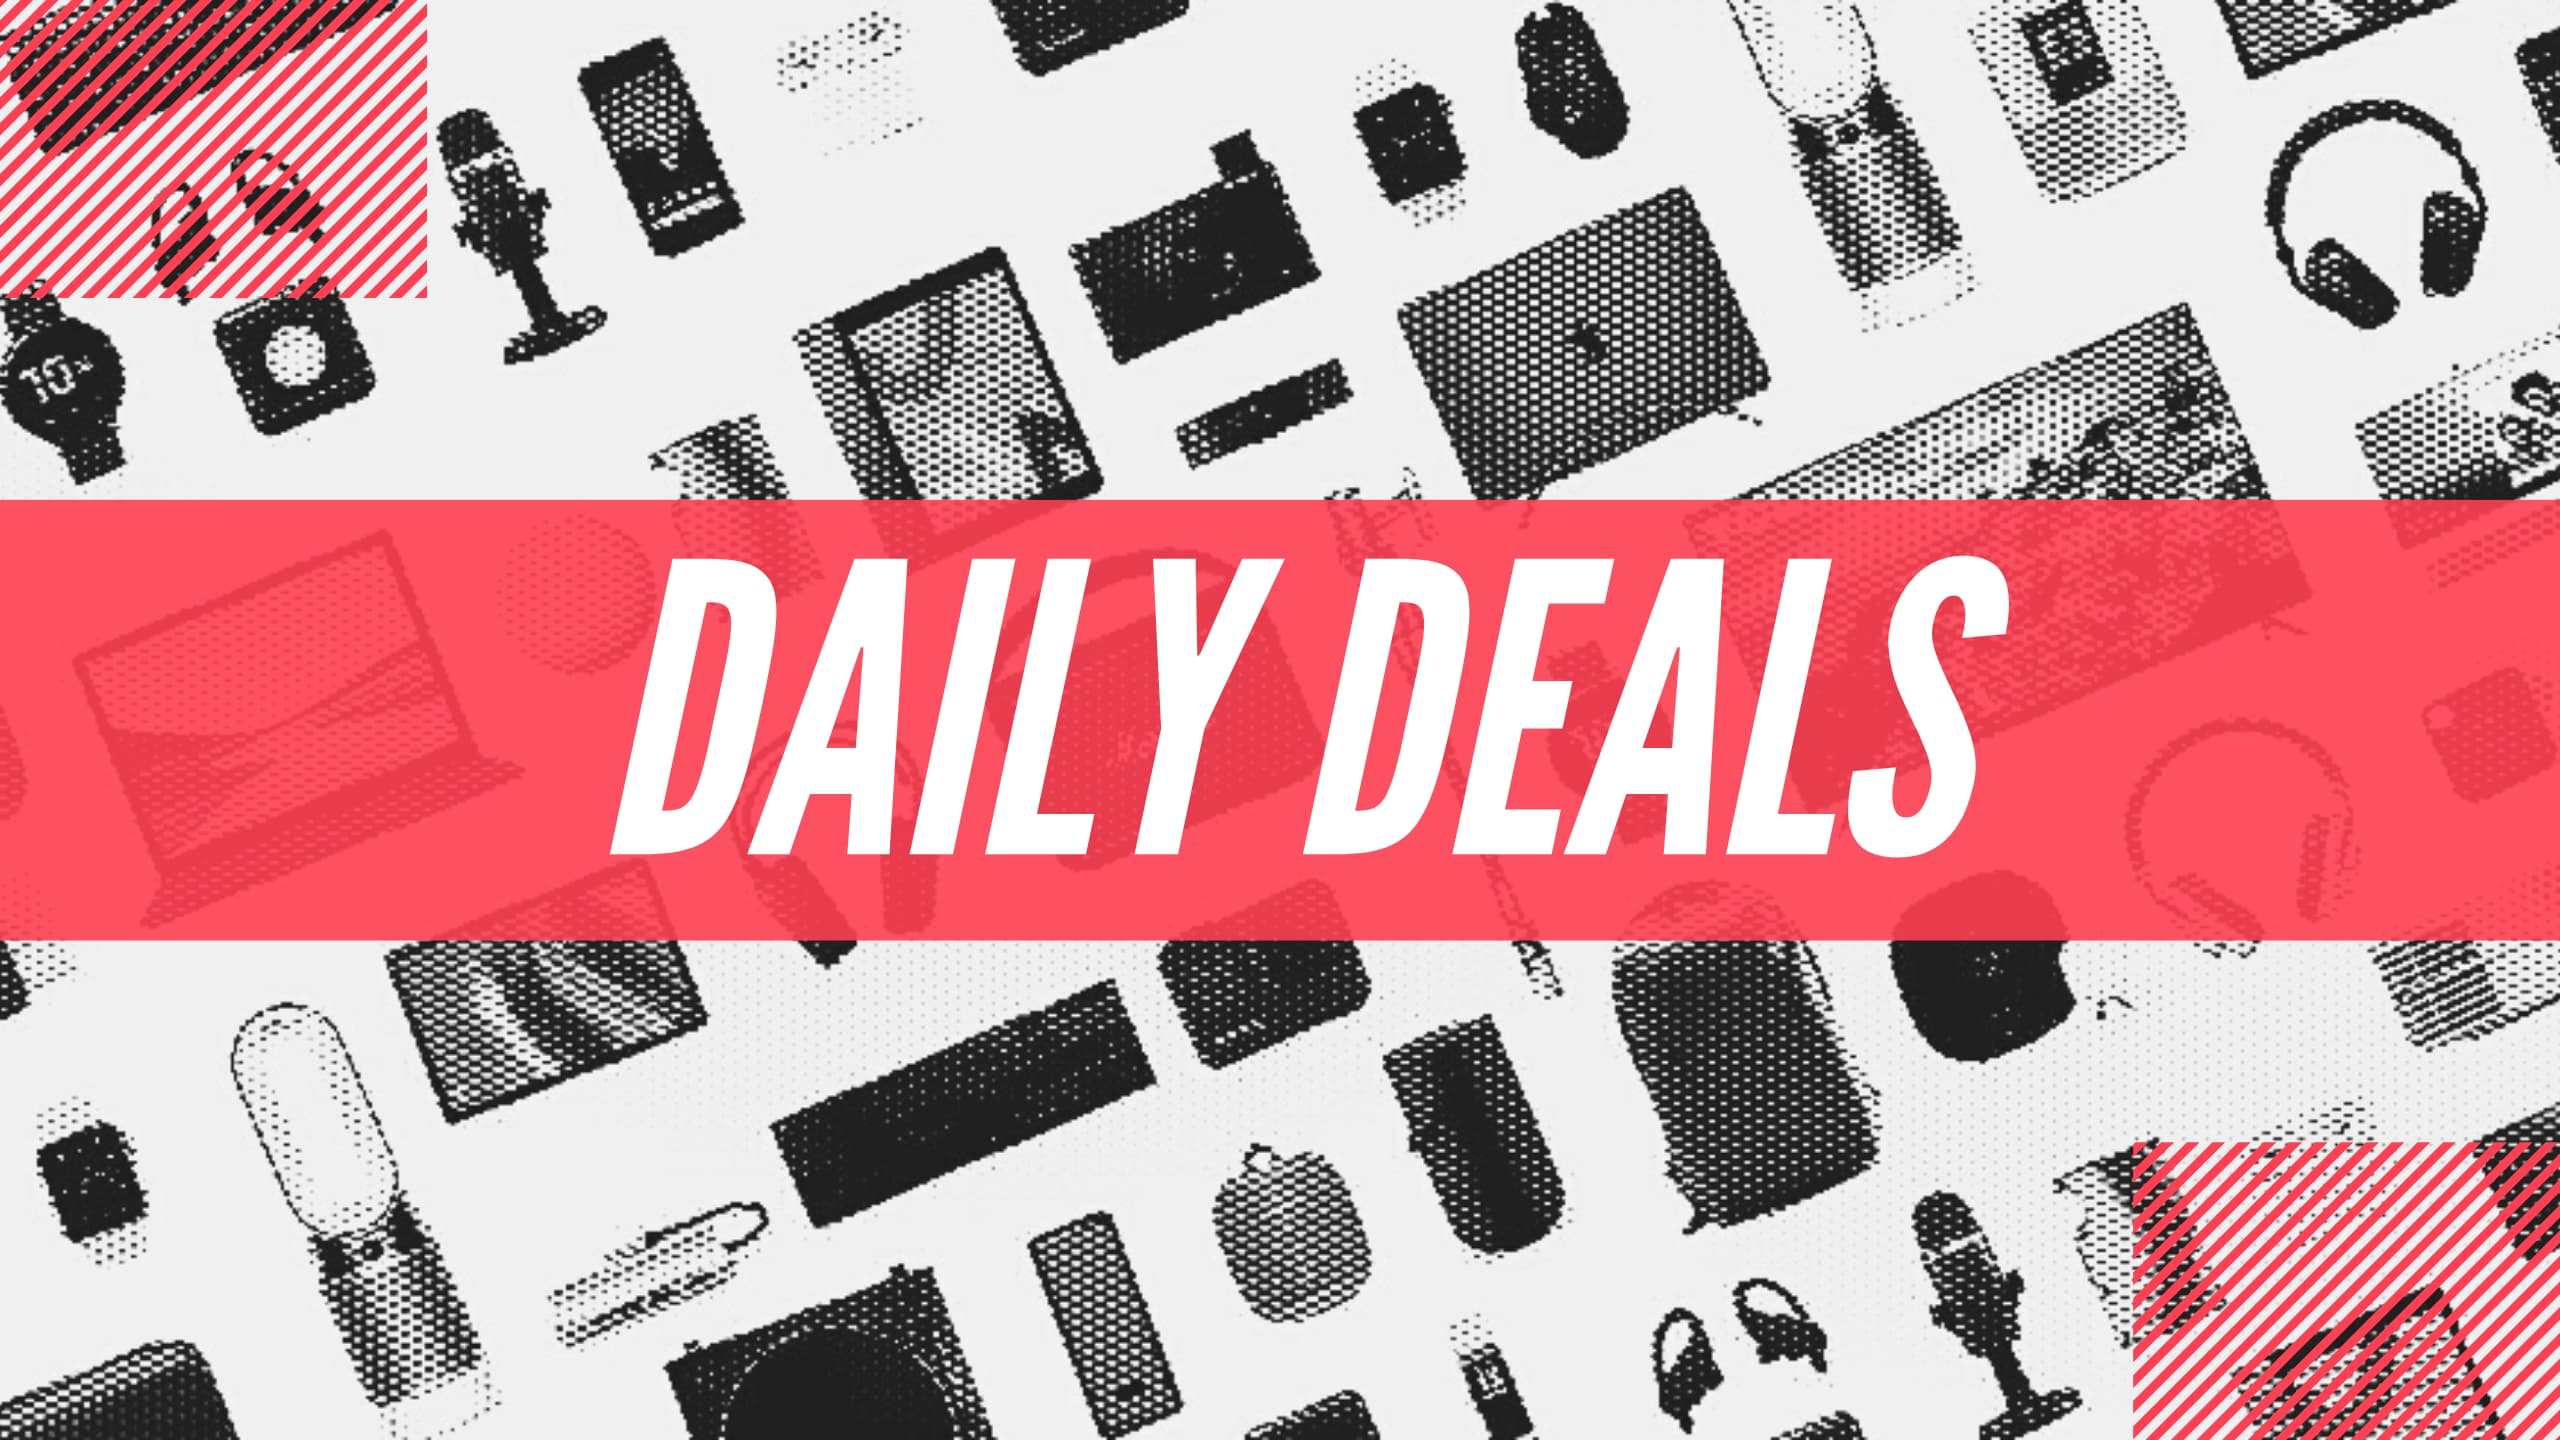 idownloadblog.com - Cody Lee - Daily Deals: V-MODA wireless headphones under $100, 2 Echo Dot speakers for $40, and much more